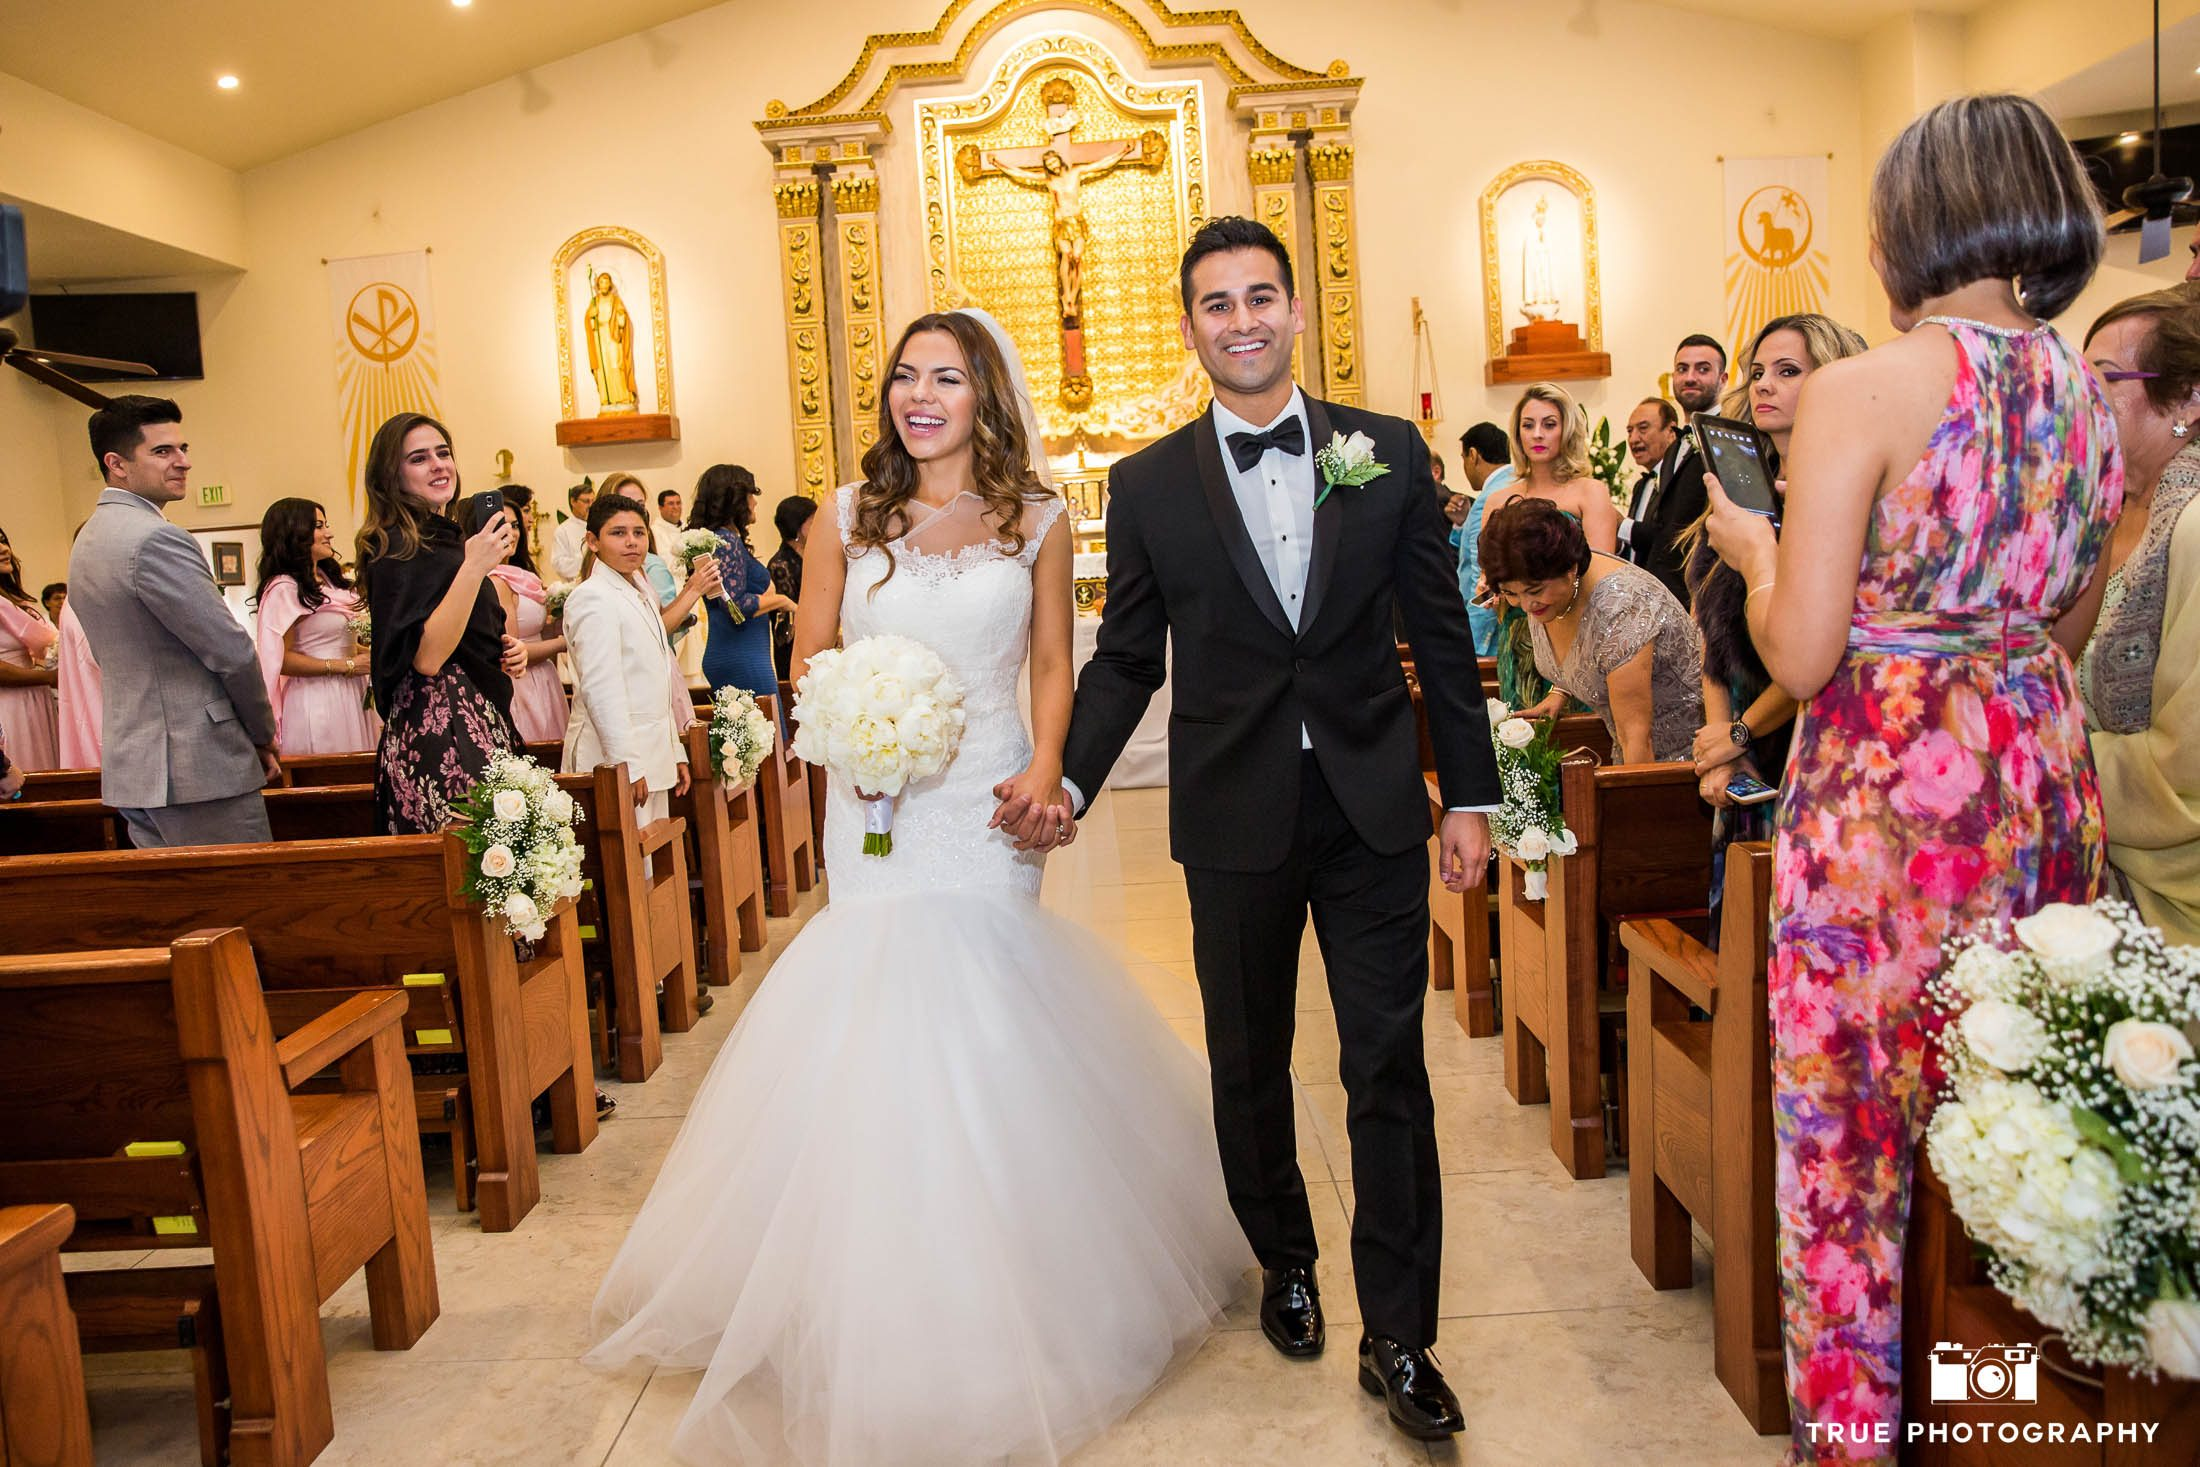 Bride and Groom's candid smiles as they walk down aisle after first kiss at Our Lady of Guadalupe church